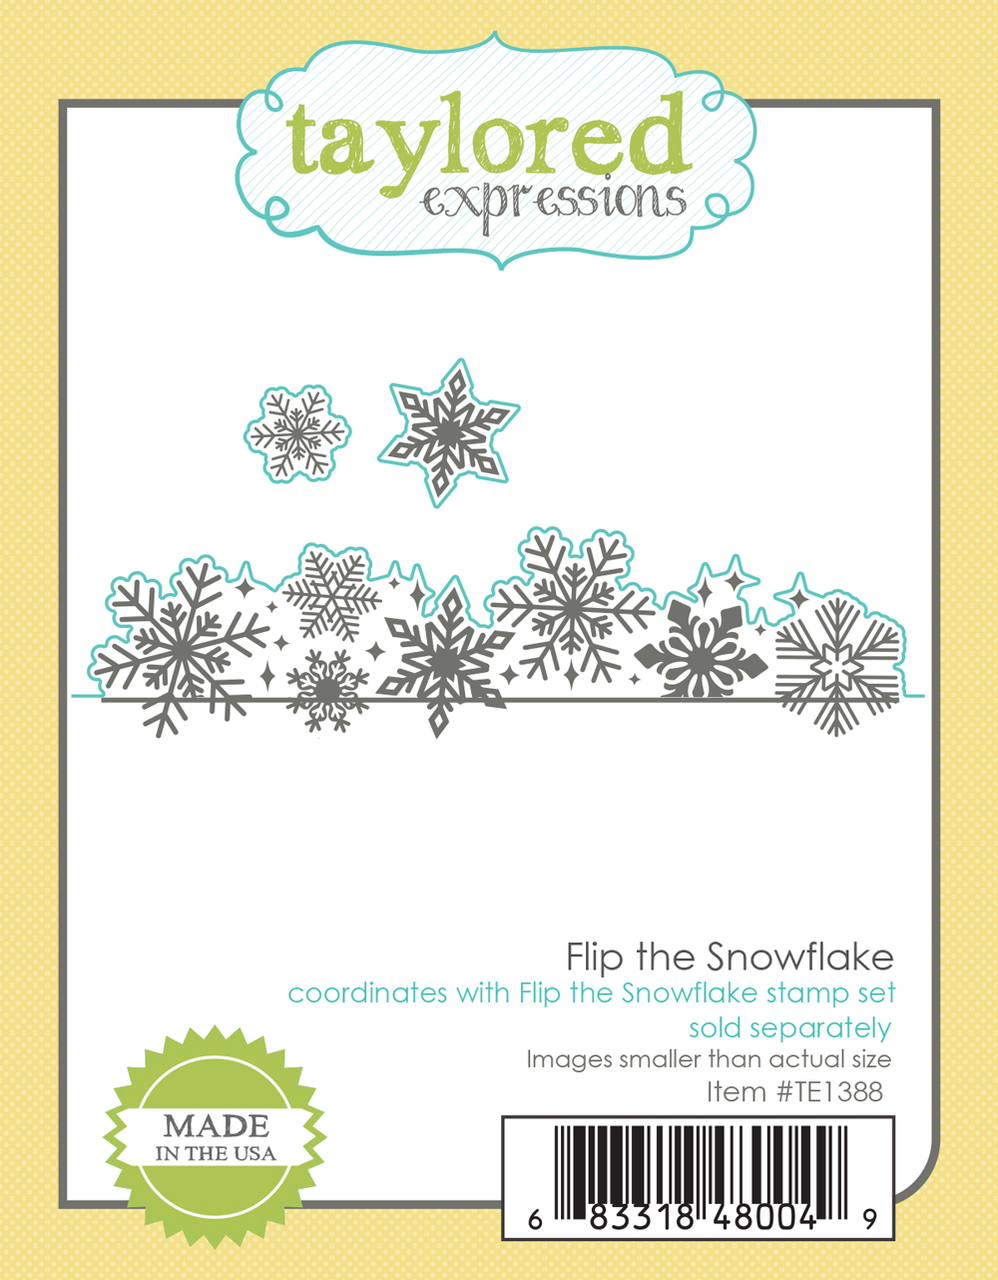 Taylored Expression - Flip the Snowflake Dies